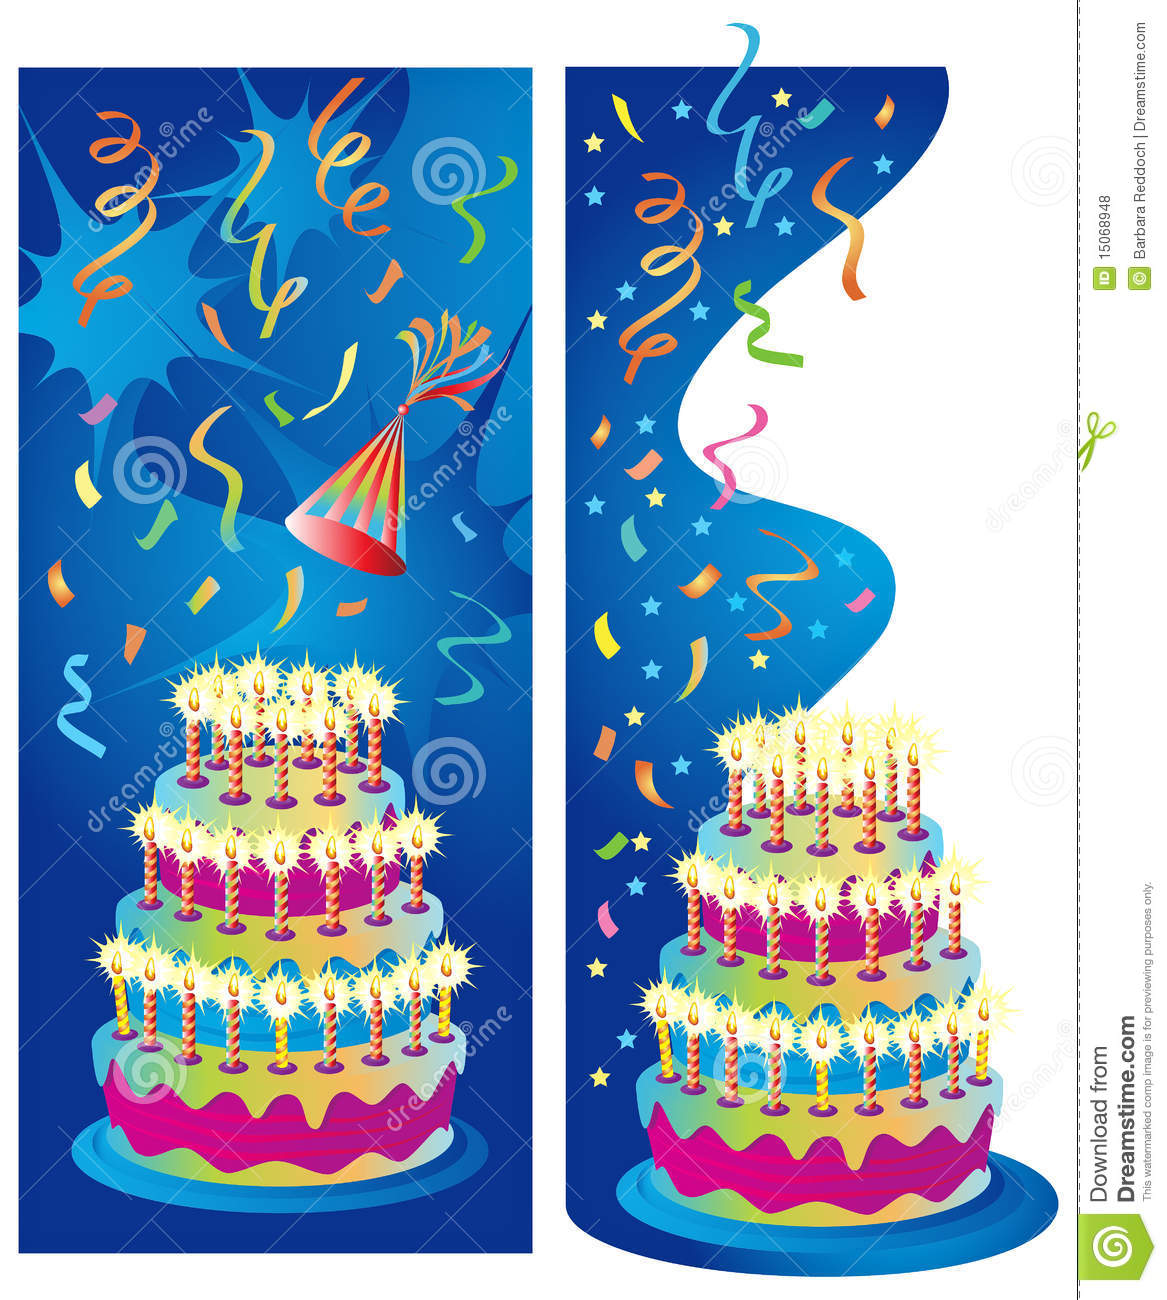 Celebration Party Banners Royalty Free Stock Photos - Image: 15068948